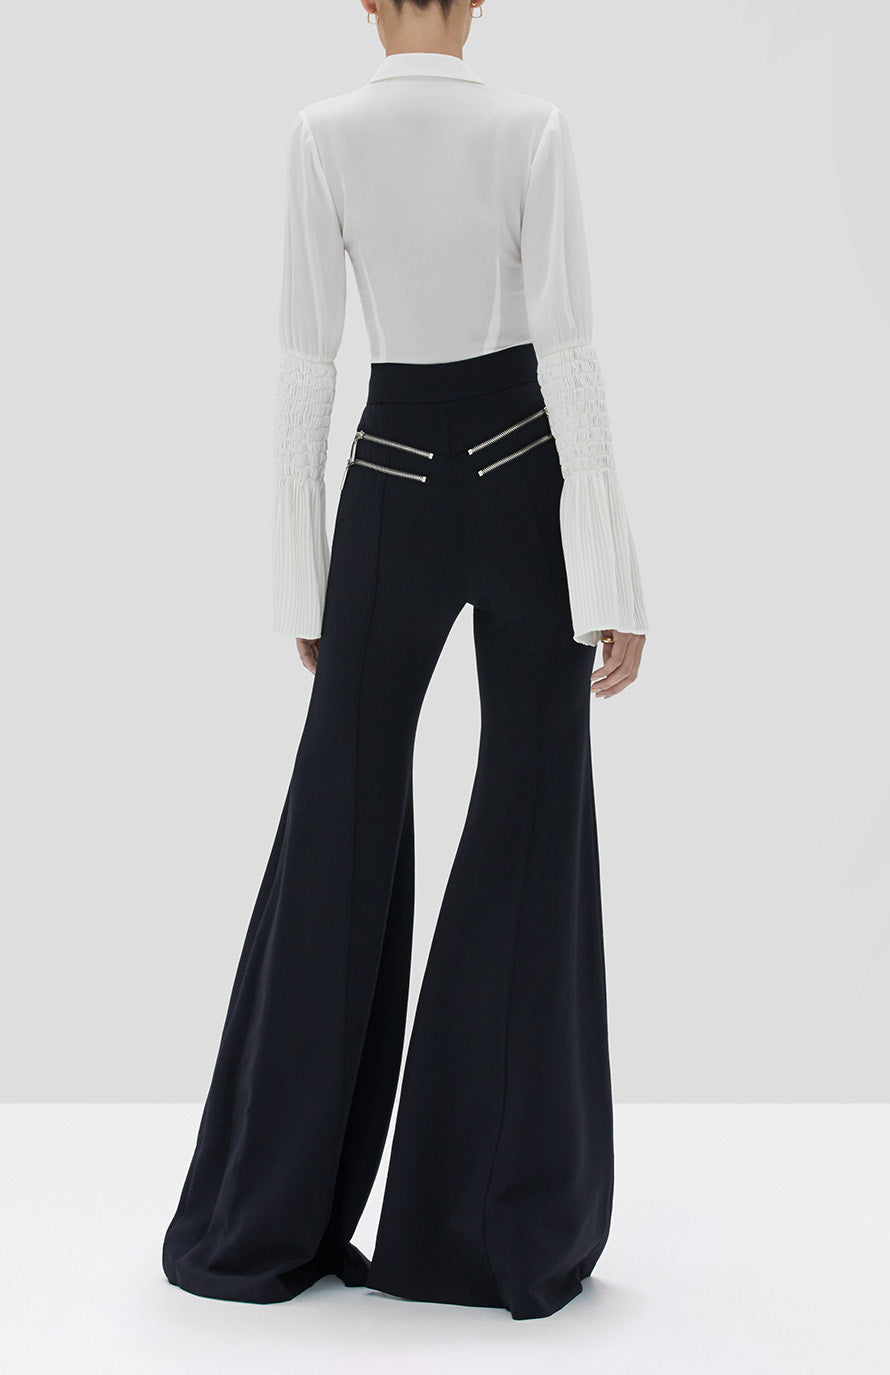 Alexis Chantal Top White and Donlow Pant Black - Rear View